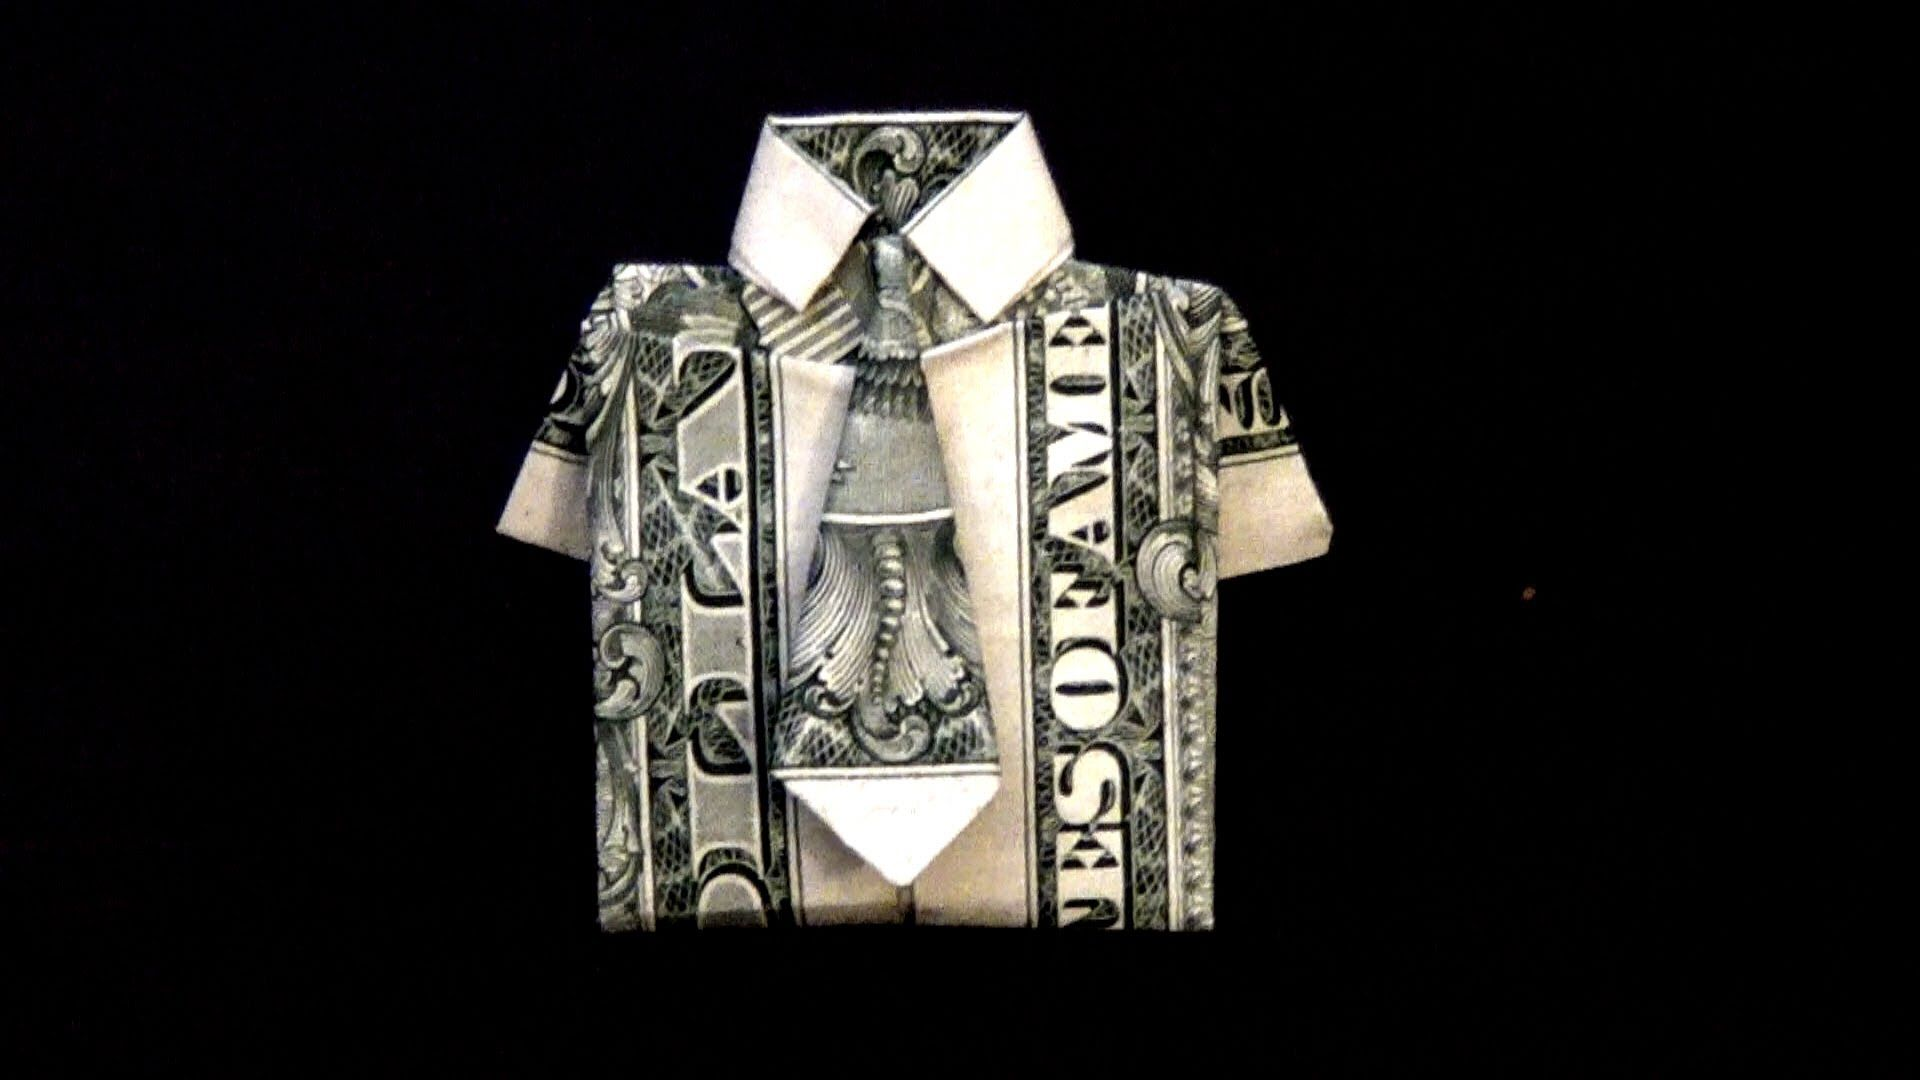 Origami money folding instructions cool ideas - How To Fold A Dollar Bill Into A Dollar Origami Shirt And Tie Diy Tutorial Step